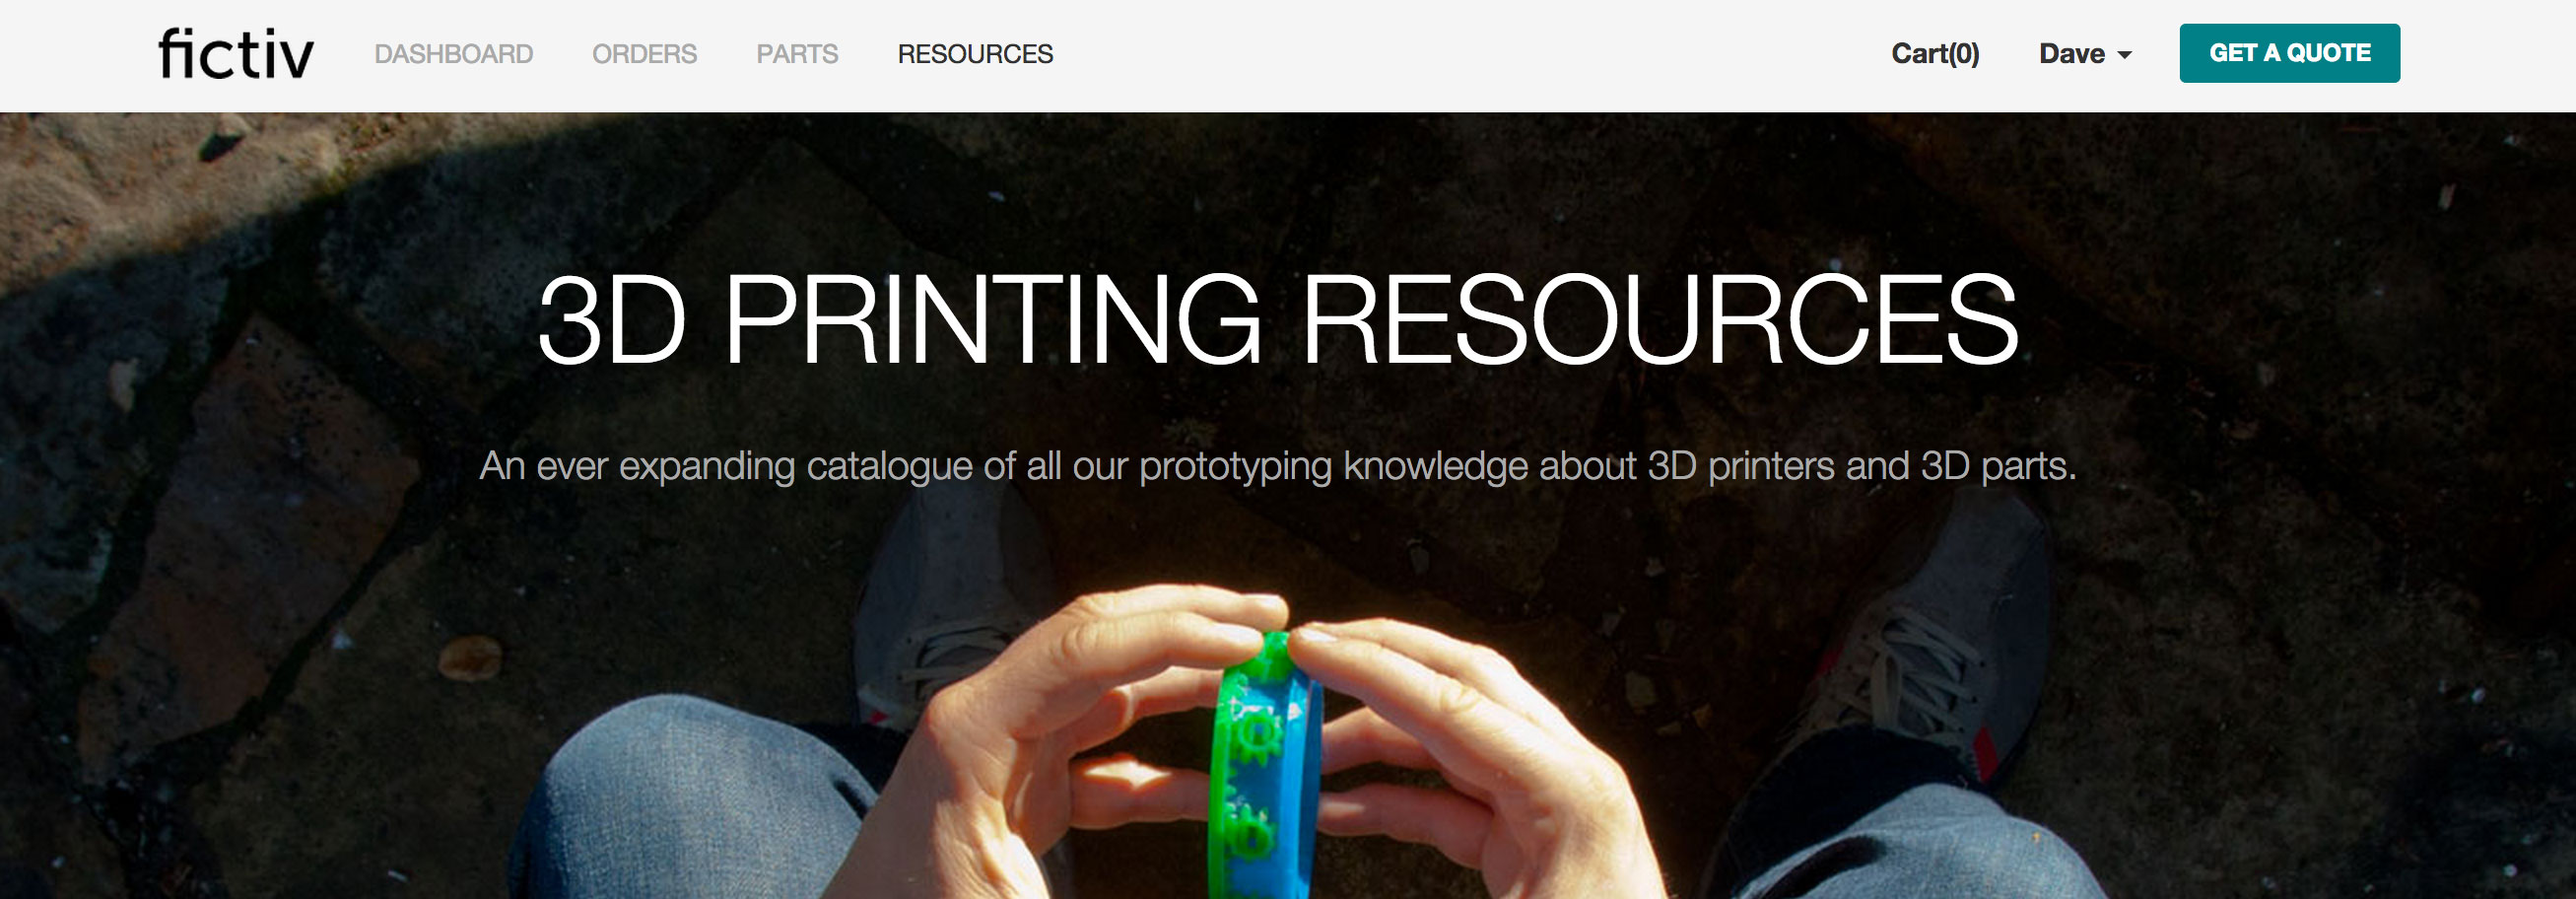 fictiv 3d printing resources